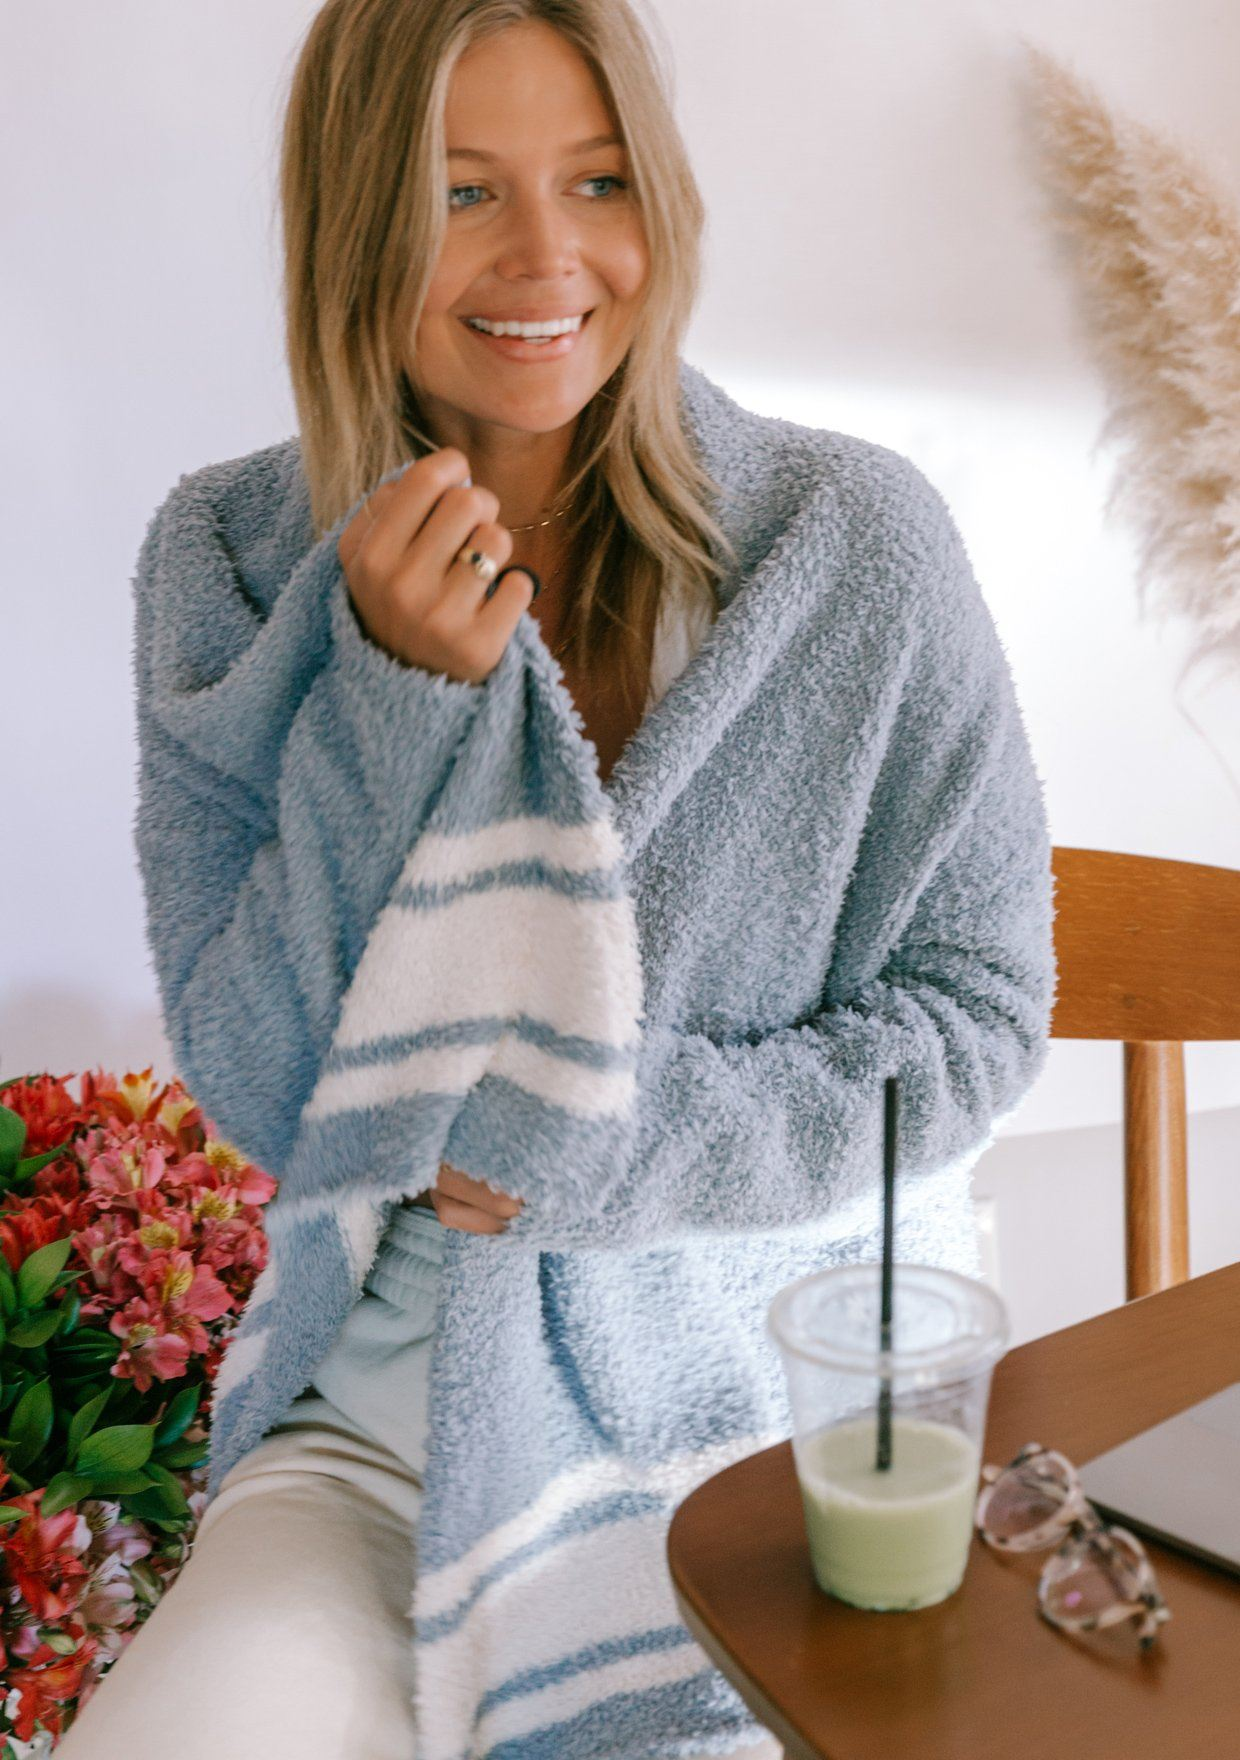 [Color: Slate/Sand] Lovestitch beautiful and super soft fuzzy lounge cardigan that feels like a cloud. A classic white stripe adds just enough style to wear it out, even if it feels like a soft bathrobe.